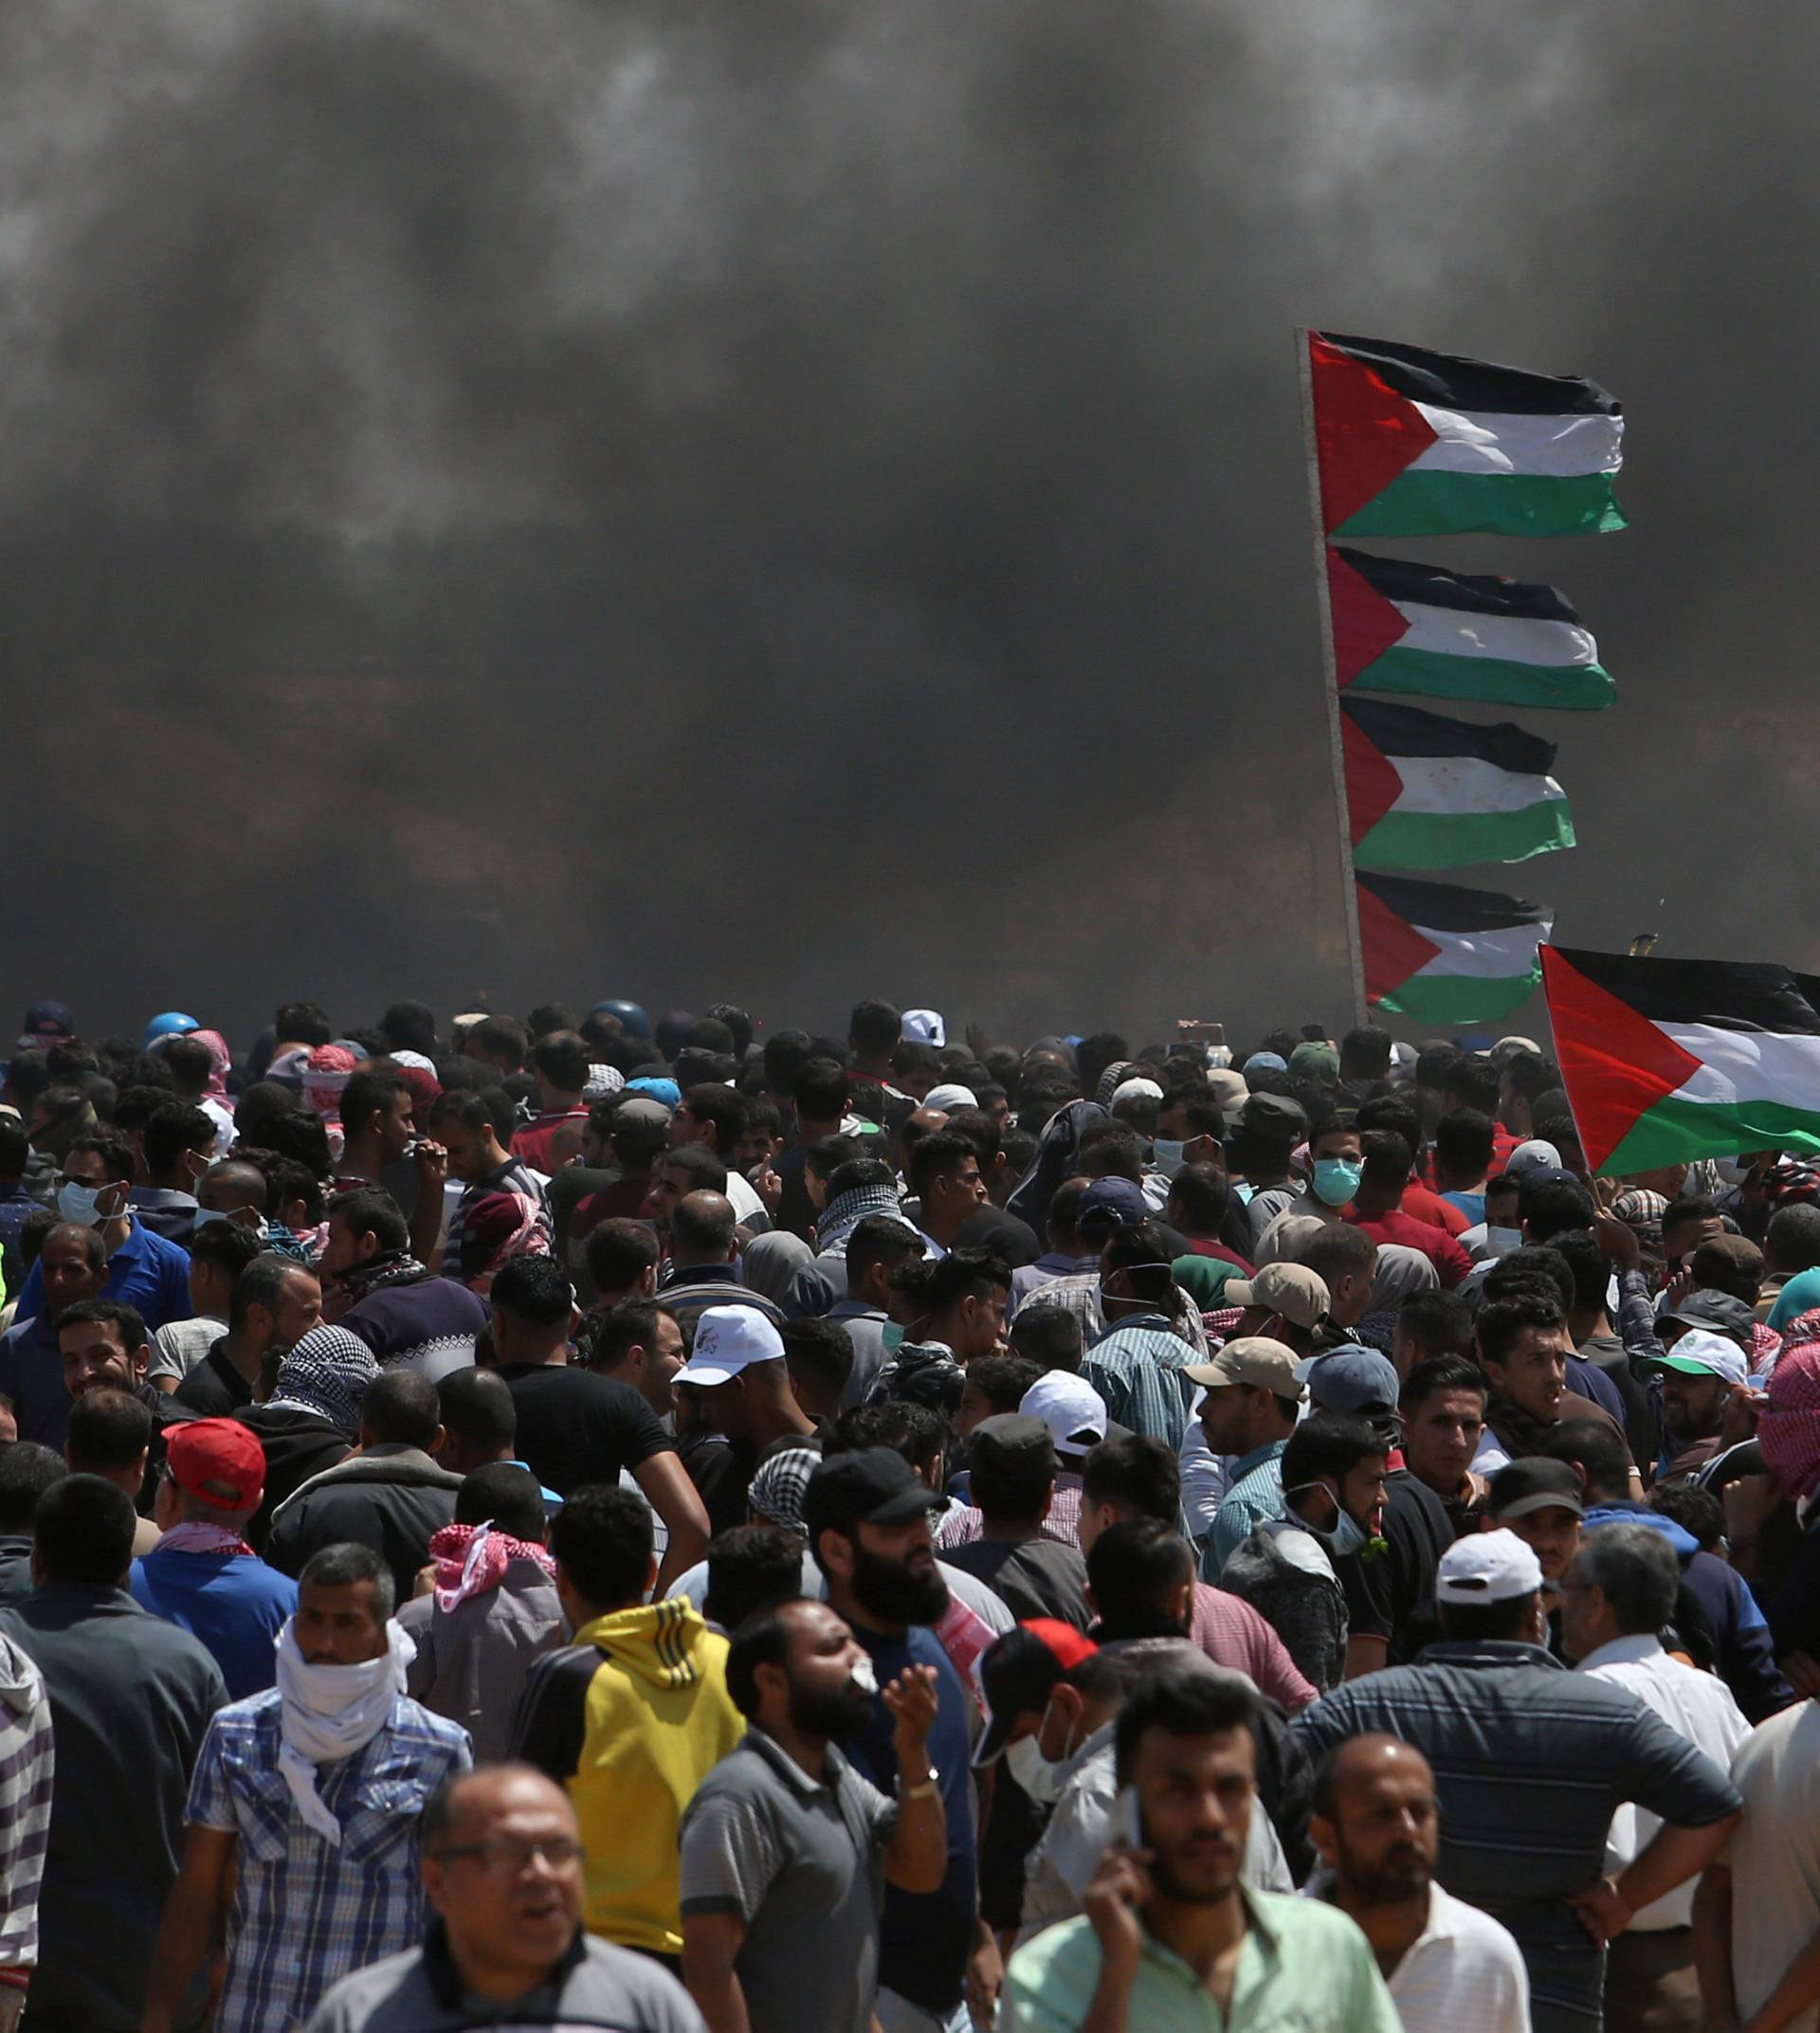 Palestinian demonstrators gather during a protest against U.S. embassy move to Jerusalem and ahead of the 70th anniversary of Nakba, at the Israel-Gaza border in the southern Gaza Strip